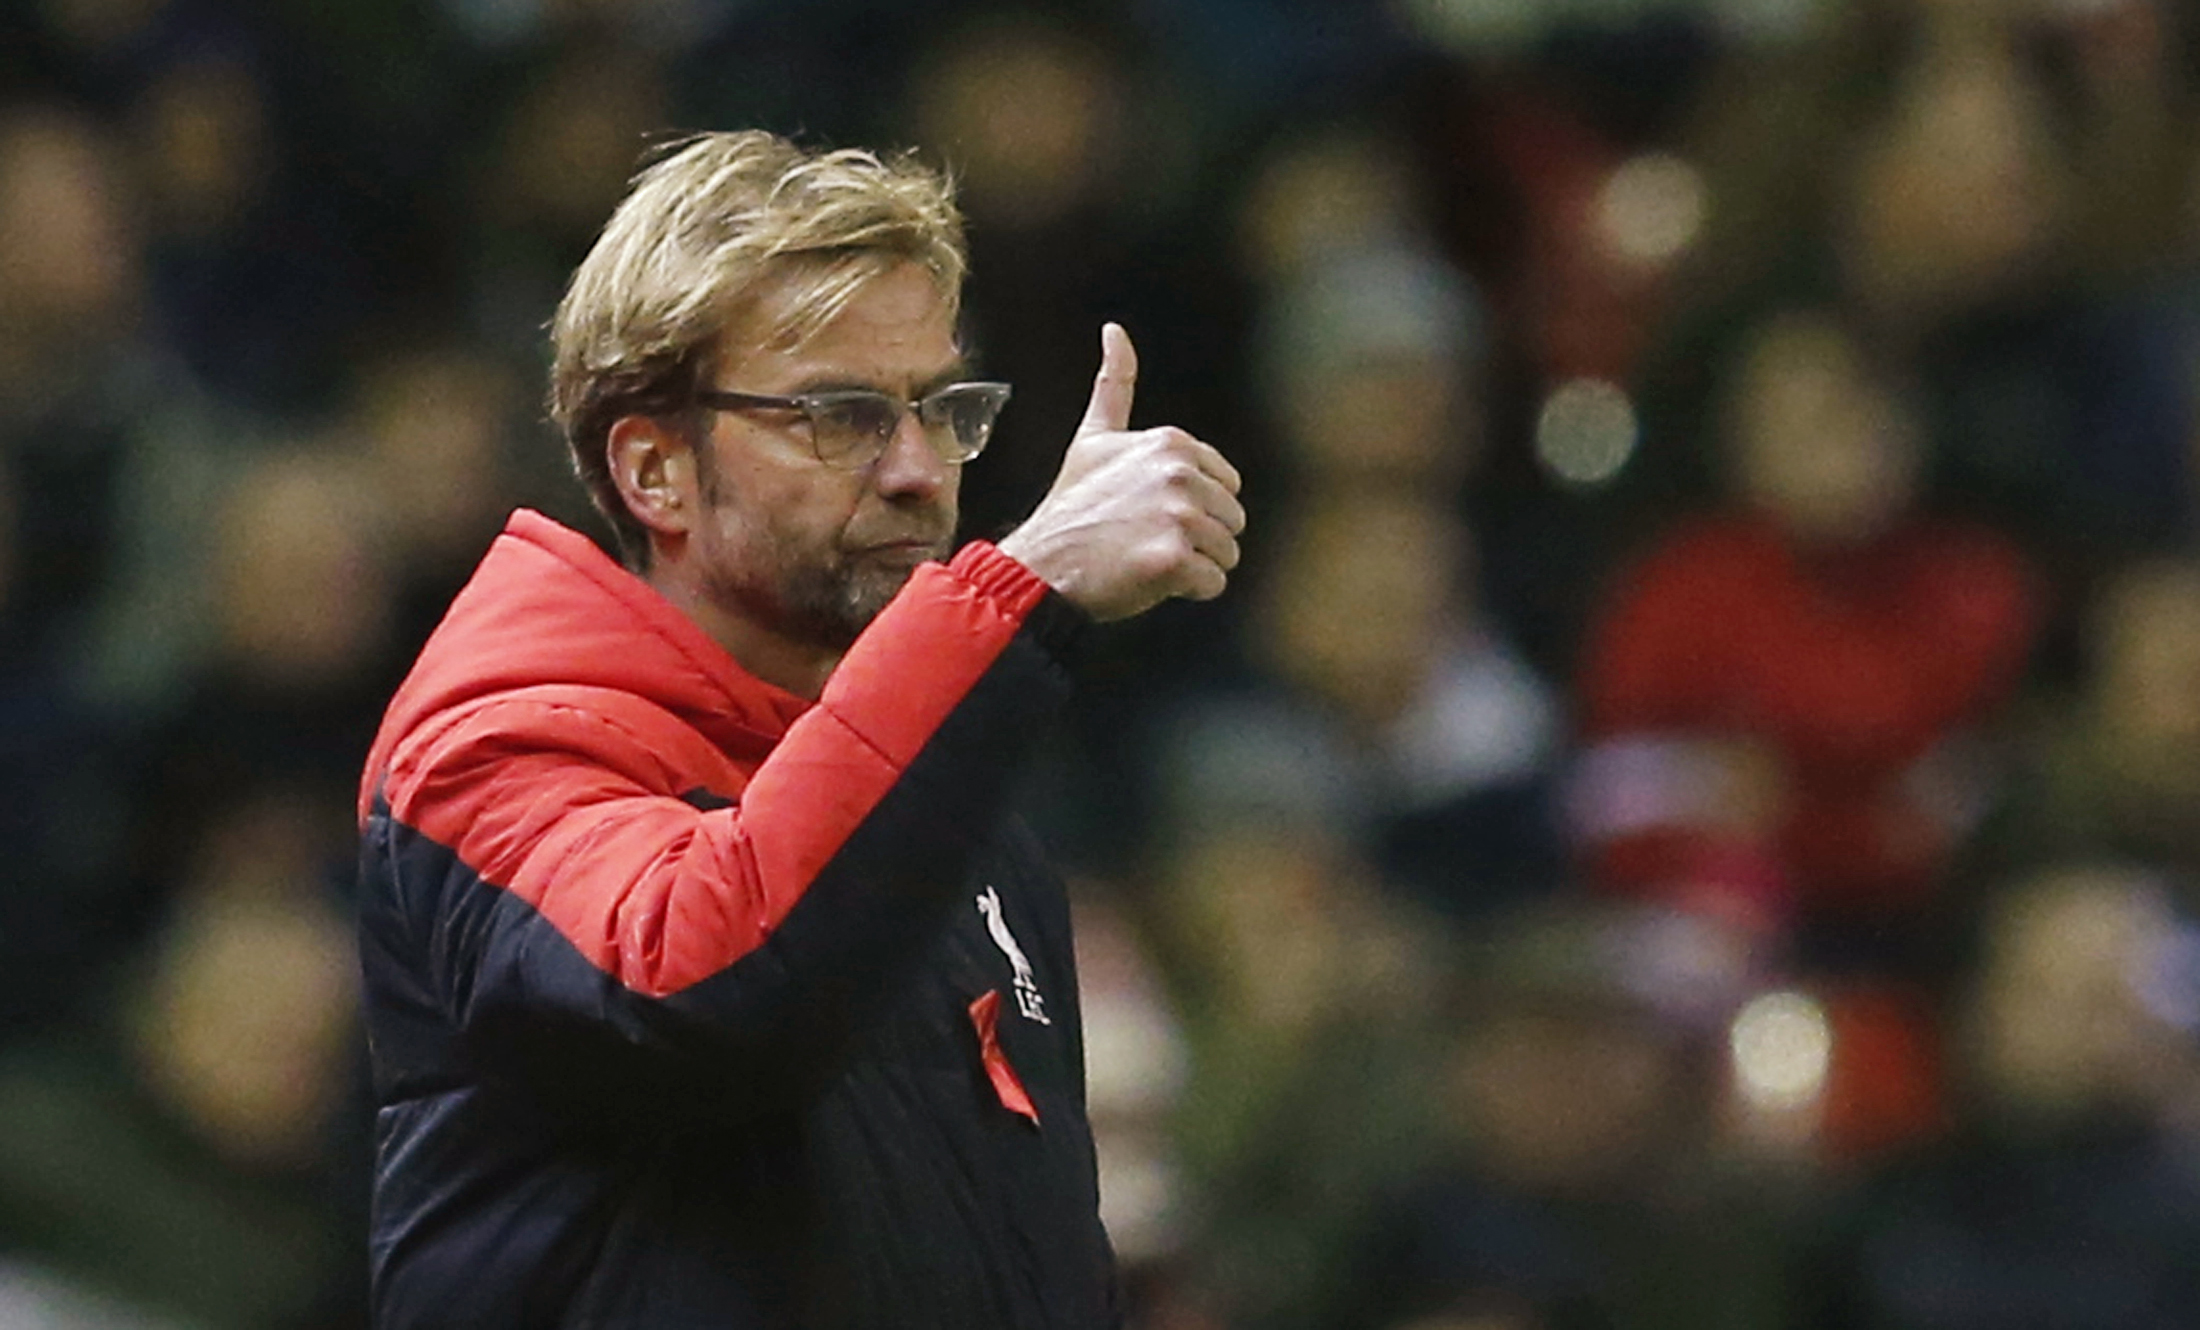 Liverpool manager Juergen Klopp looks on during the Barclays' Premier League game at Anfield on November 29, 2015. Photo: Reuters